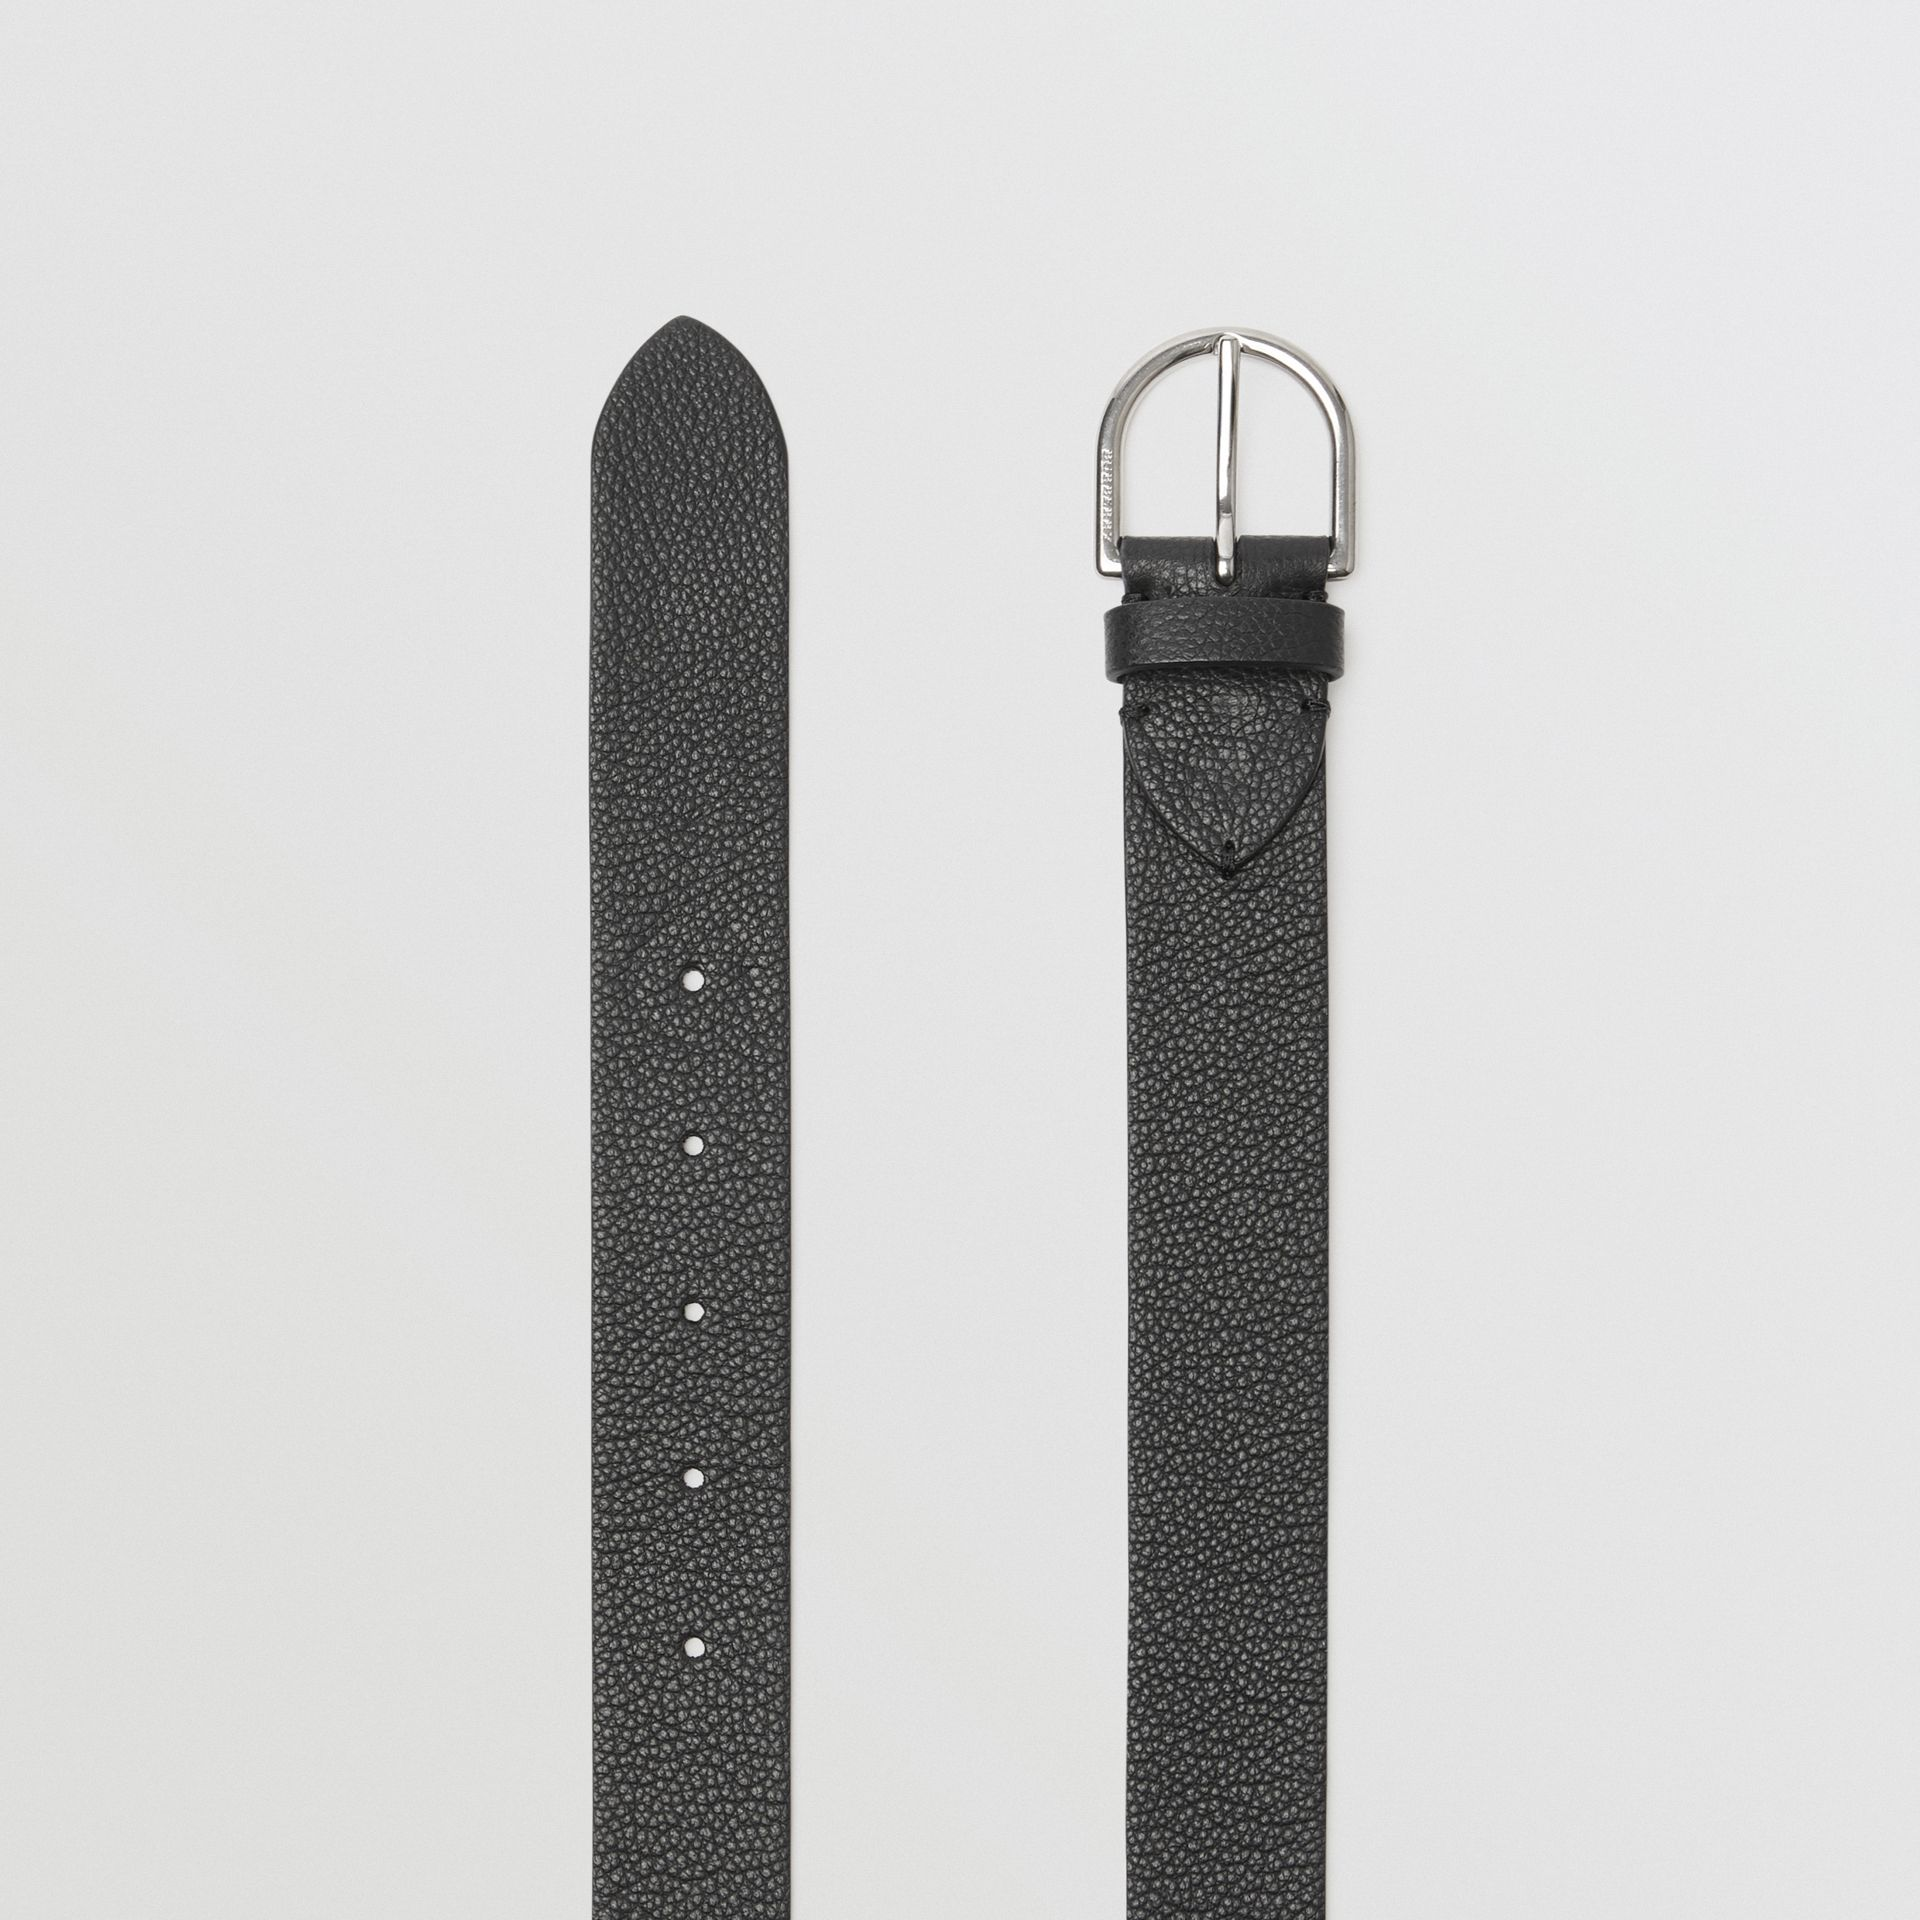 D-shaped Buckle Grainy Leather Belt in Black - Men | Burberry - gallery image 5